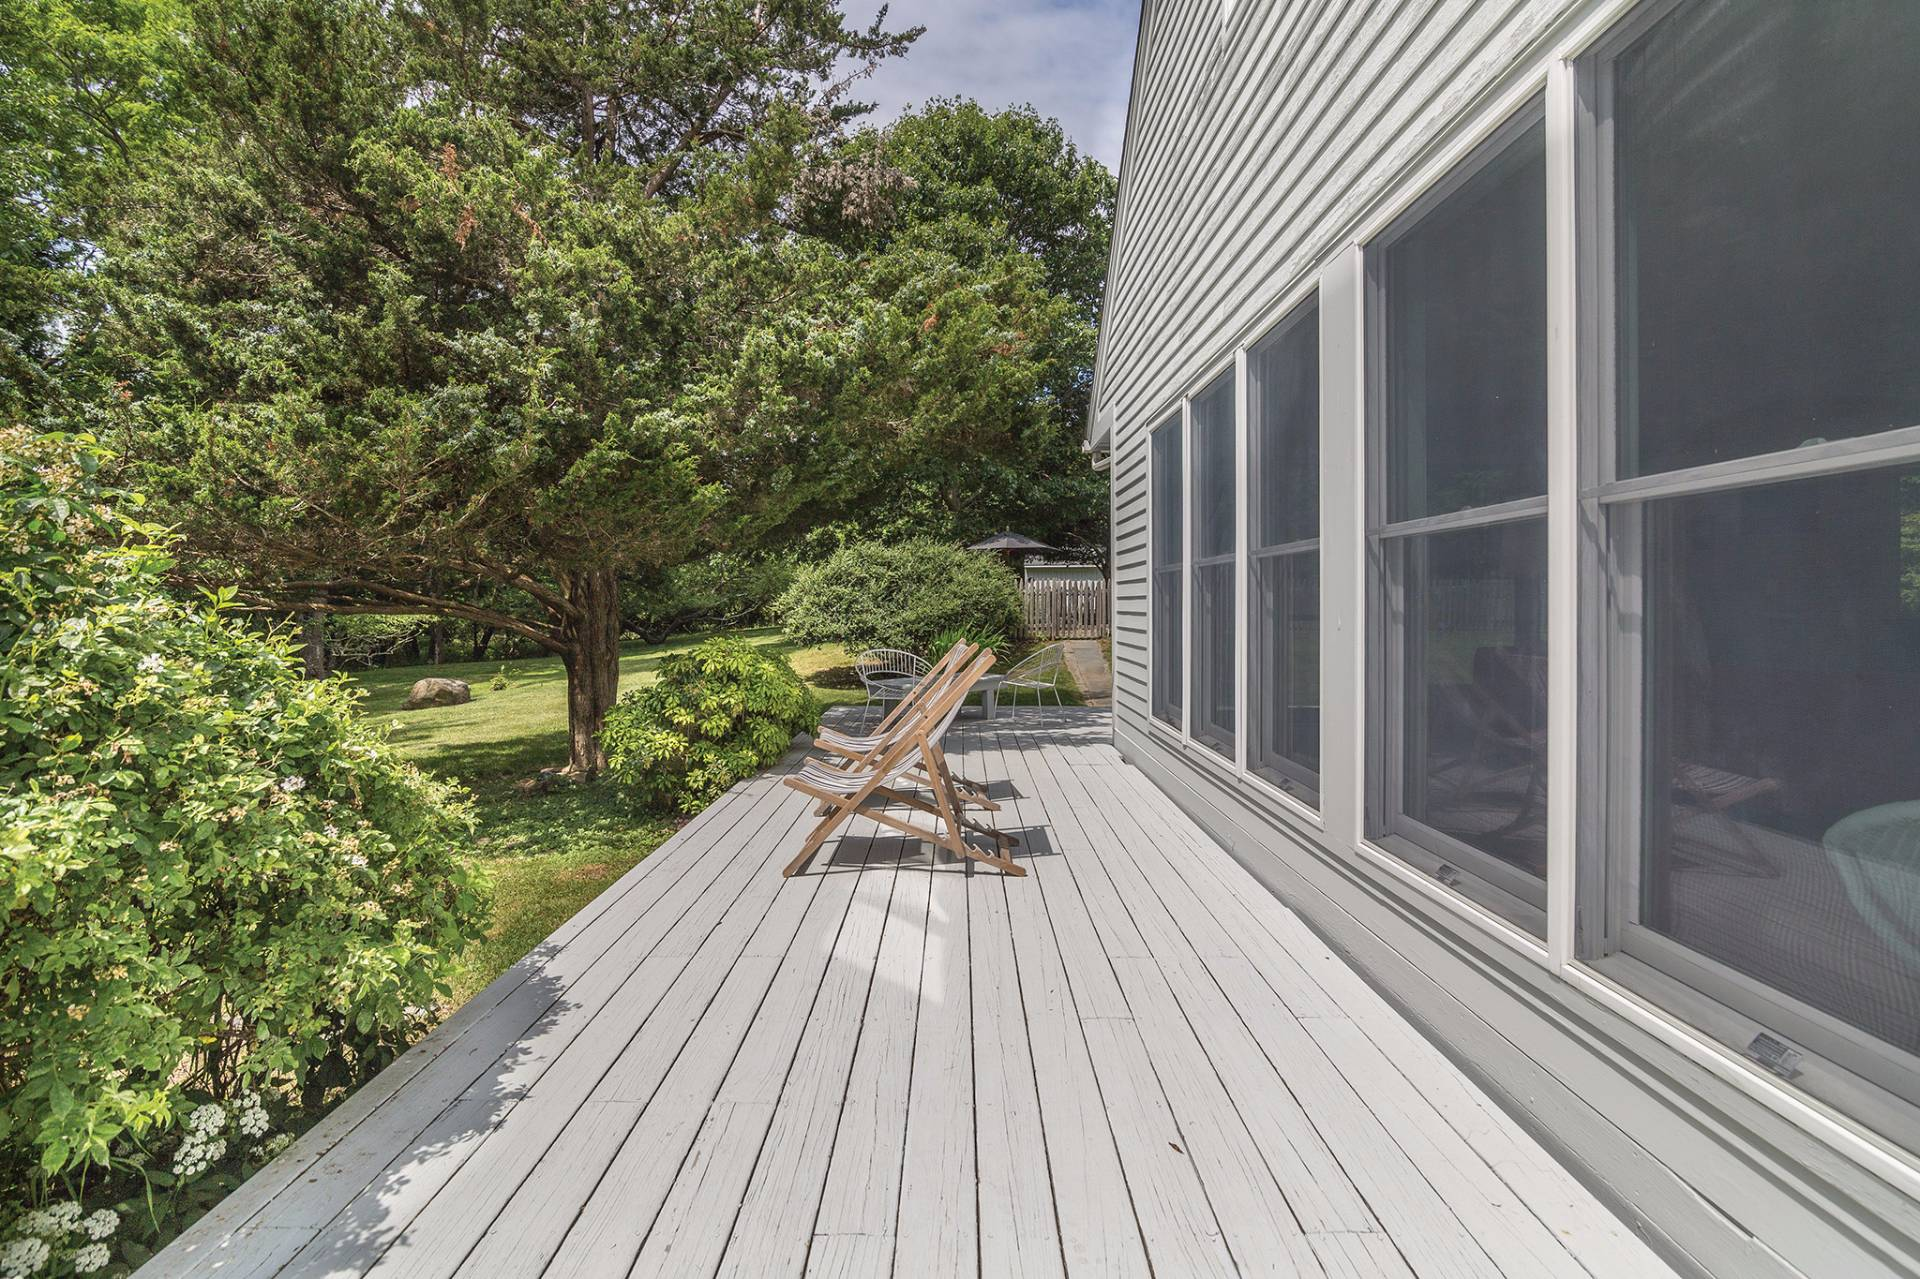 Additional photo for property listing at European Country Modern With Pool  Shelter Island, Nueva York